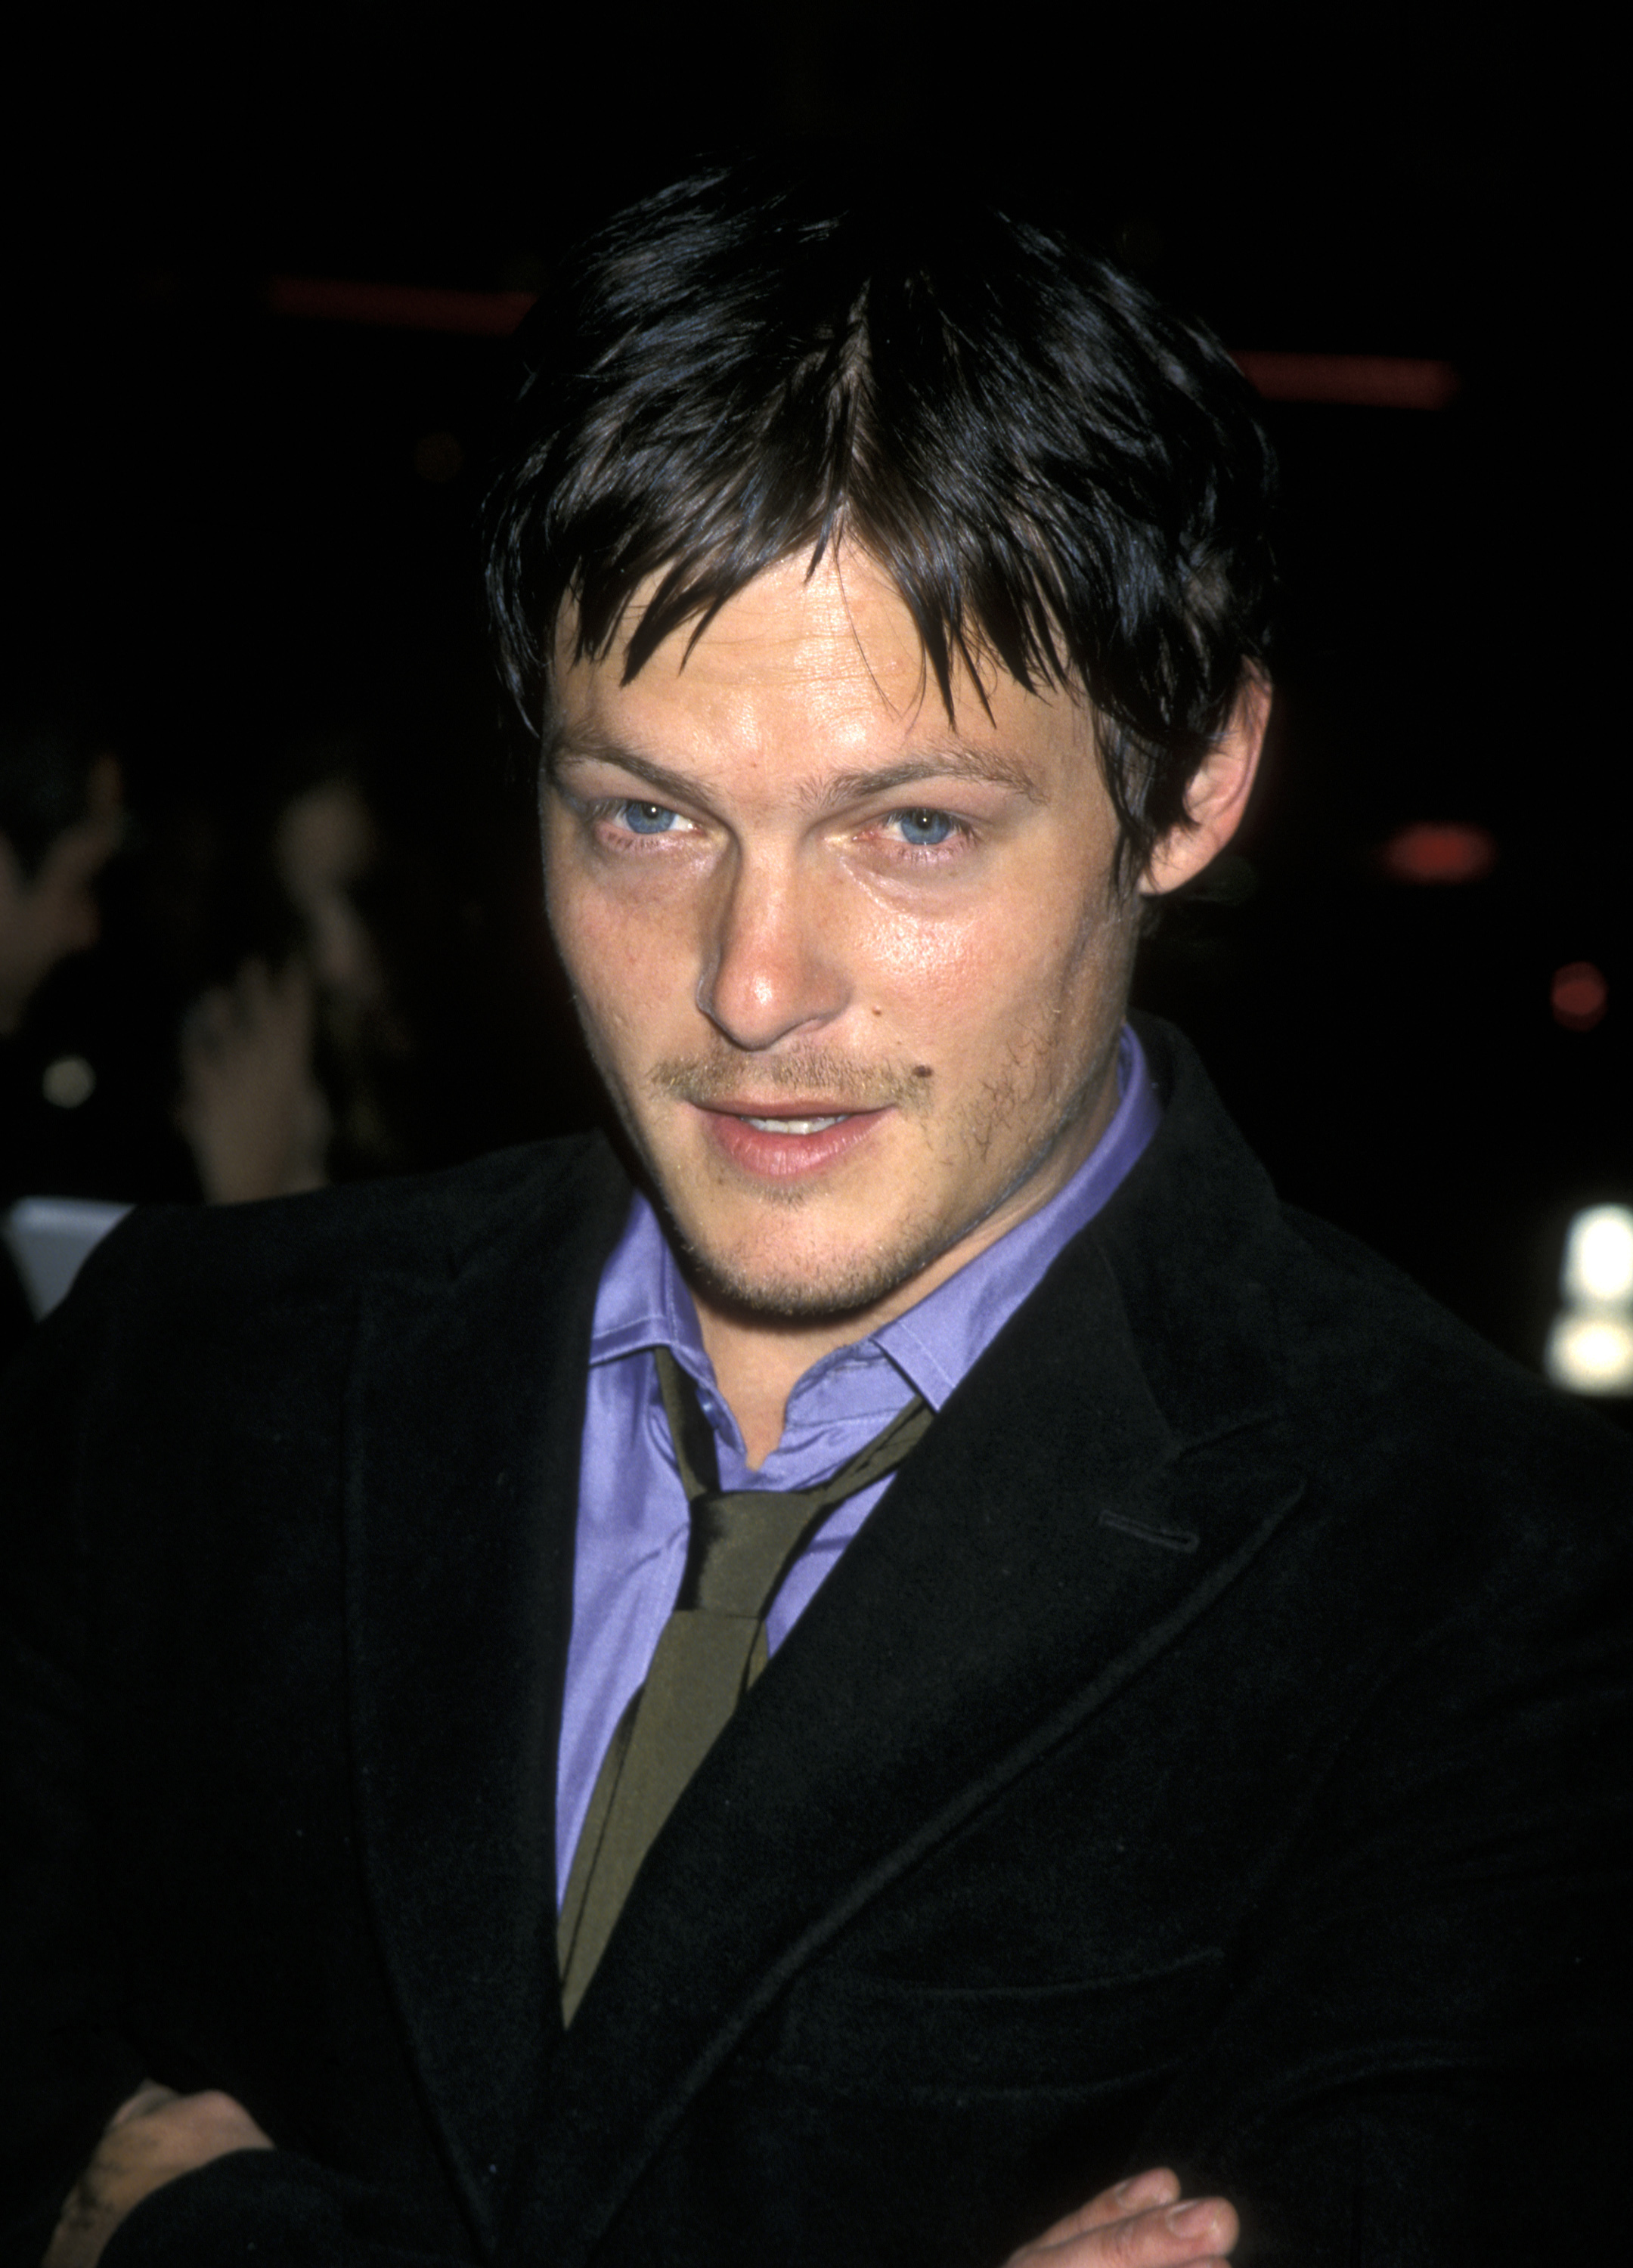 These old photos of Norman Reedus without the hair are ...